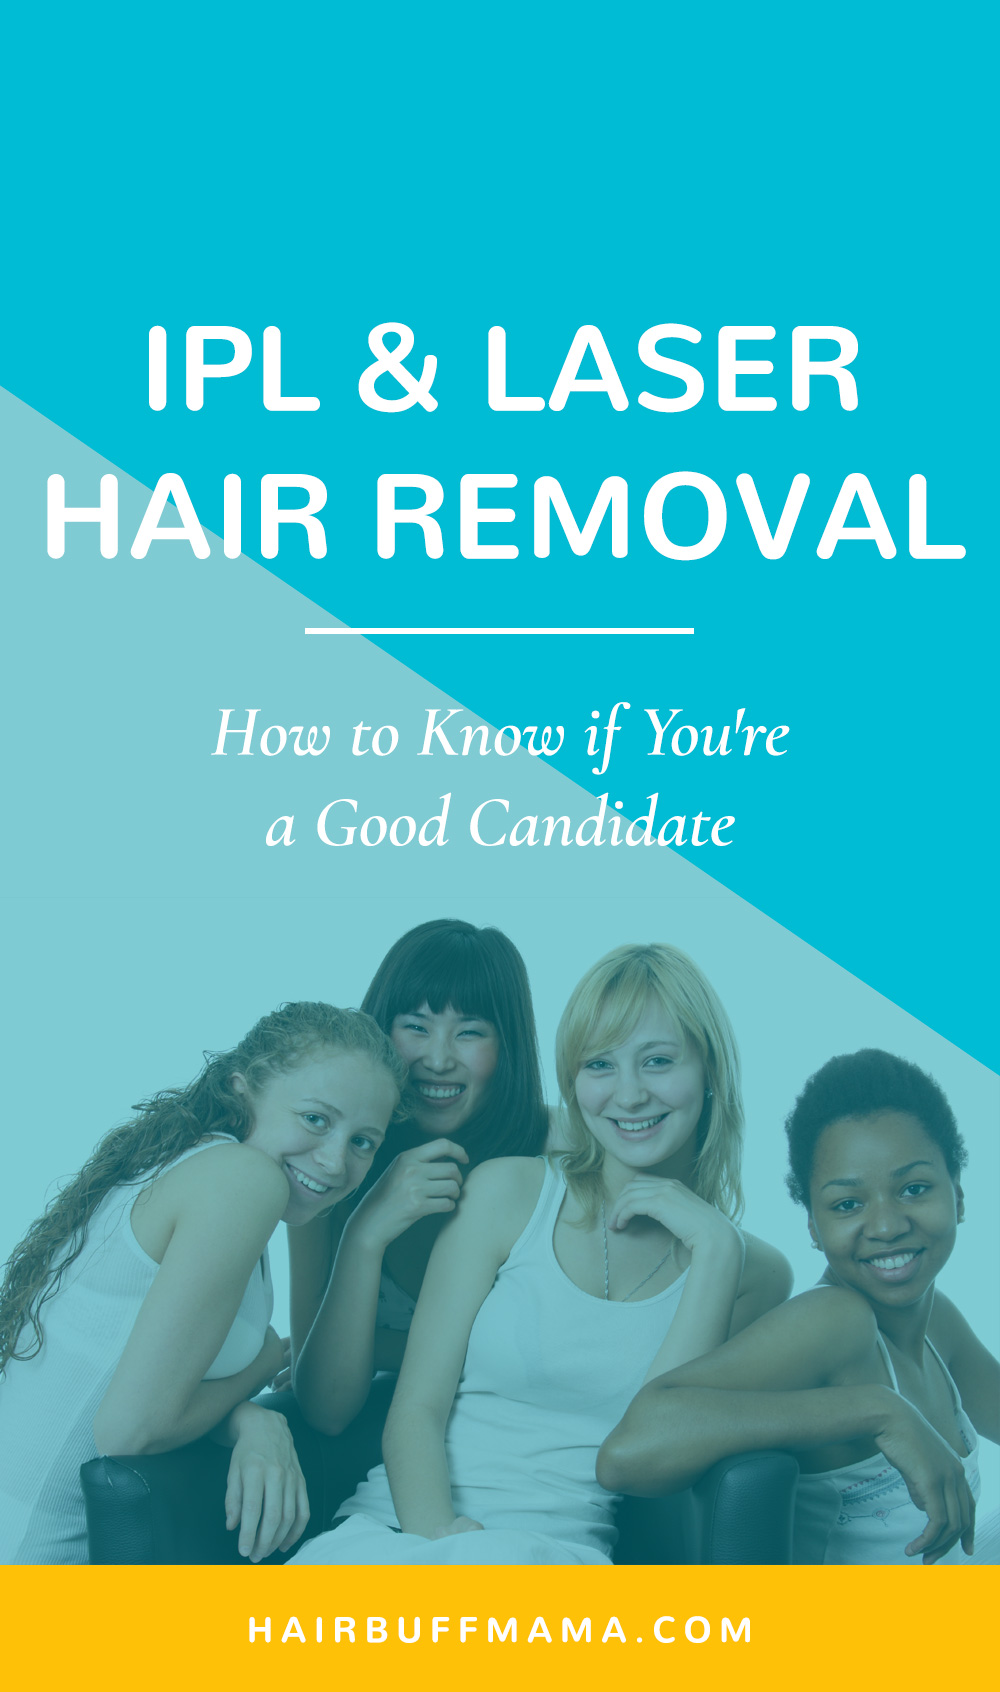 IPL and Laser Hair Removal: How to Know if You're a Good Candidate